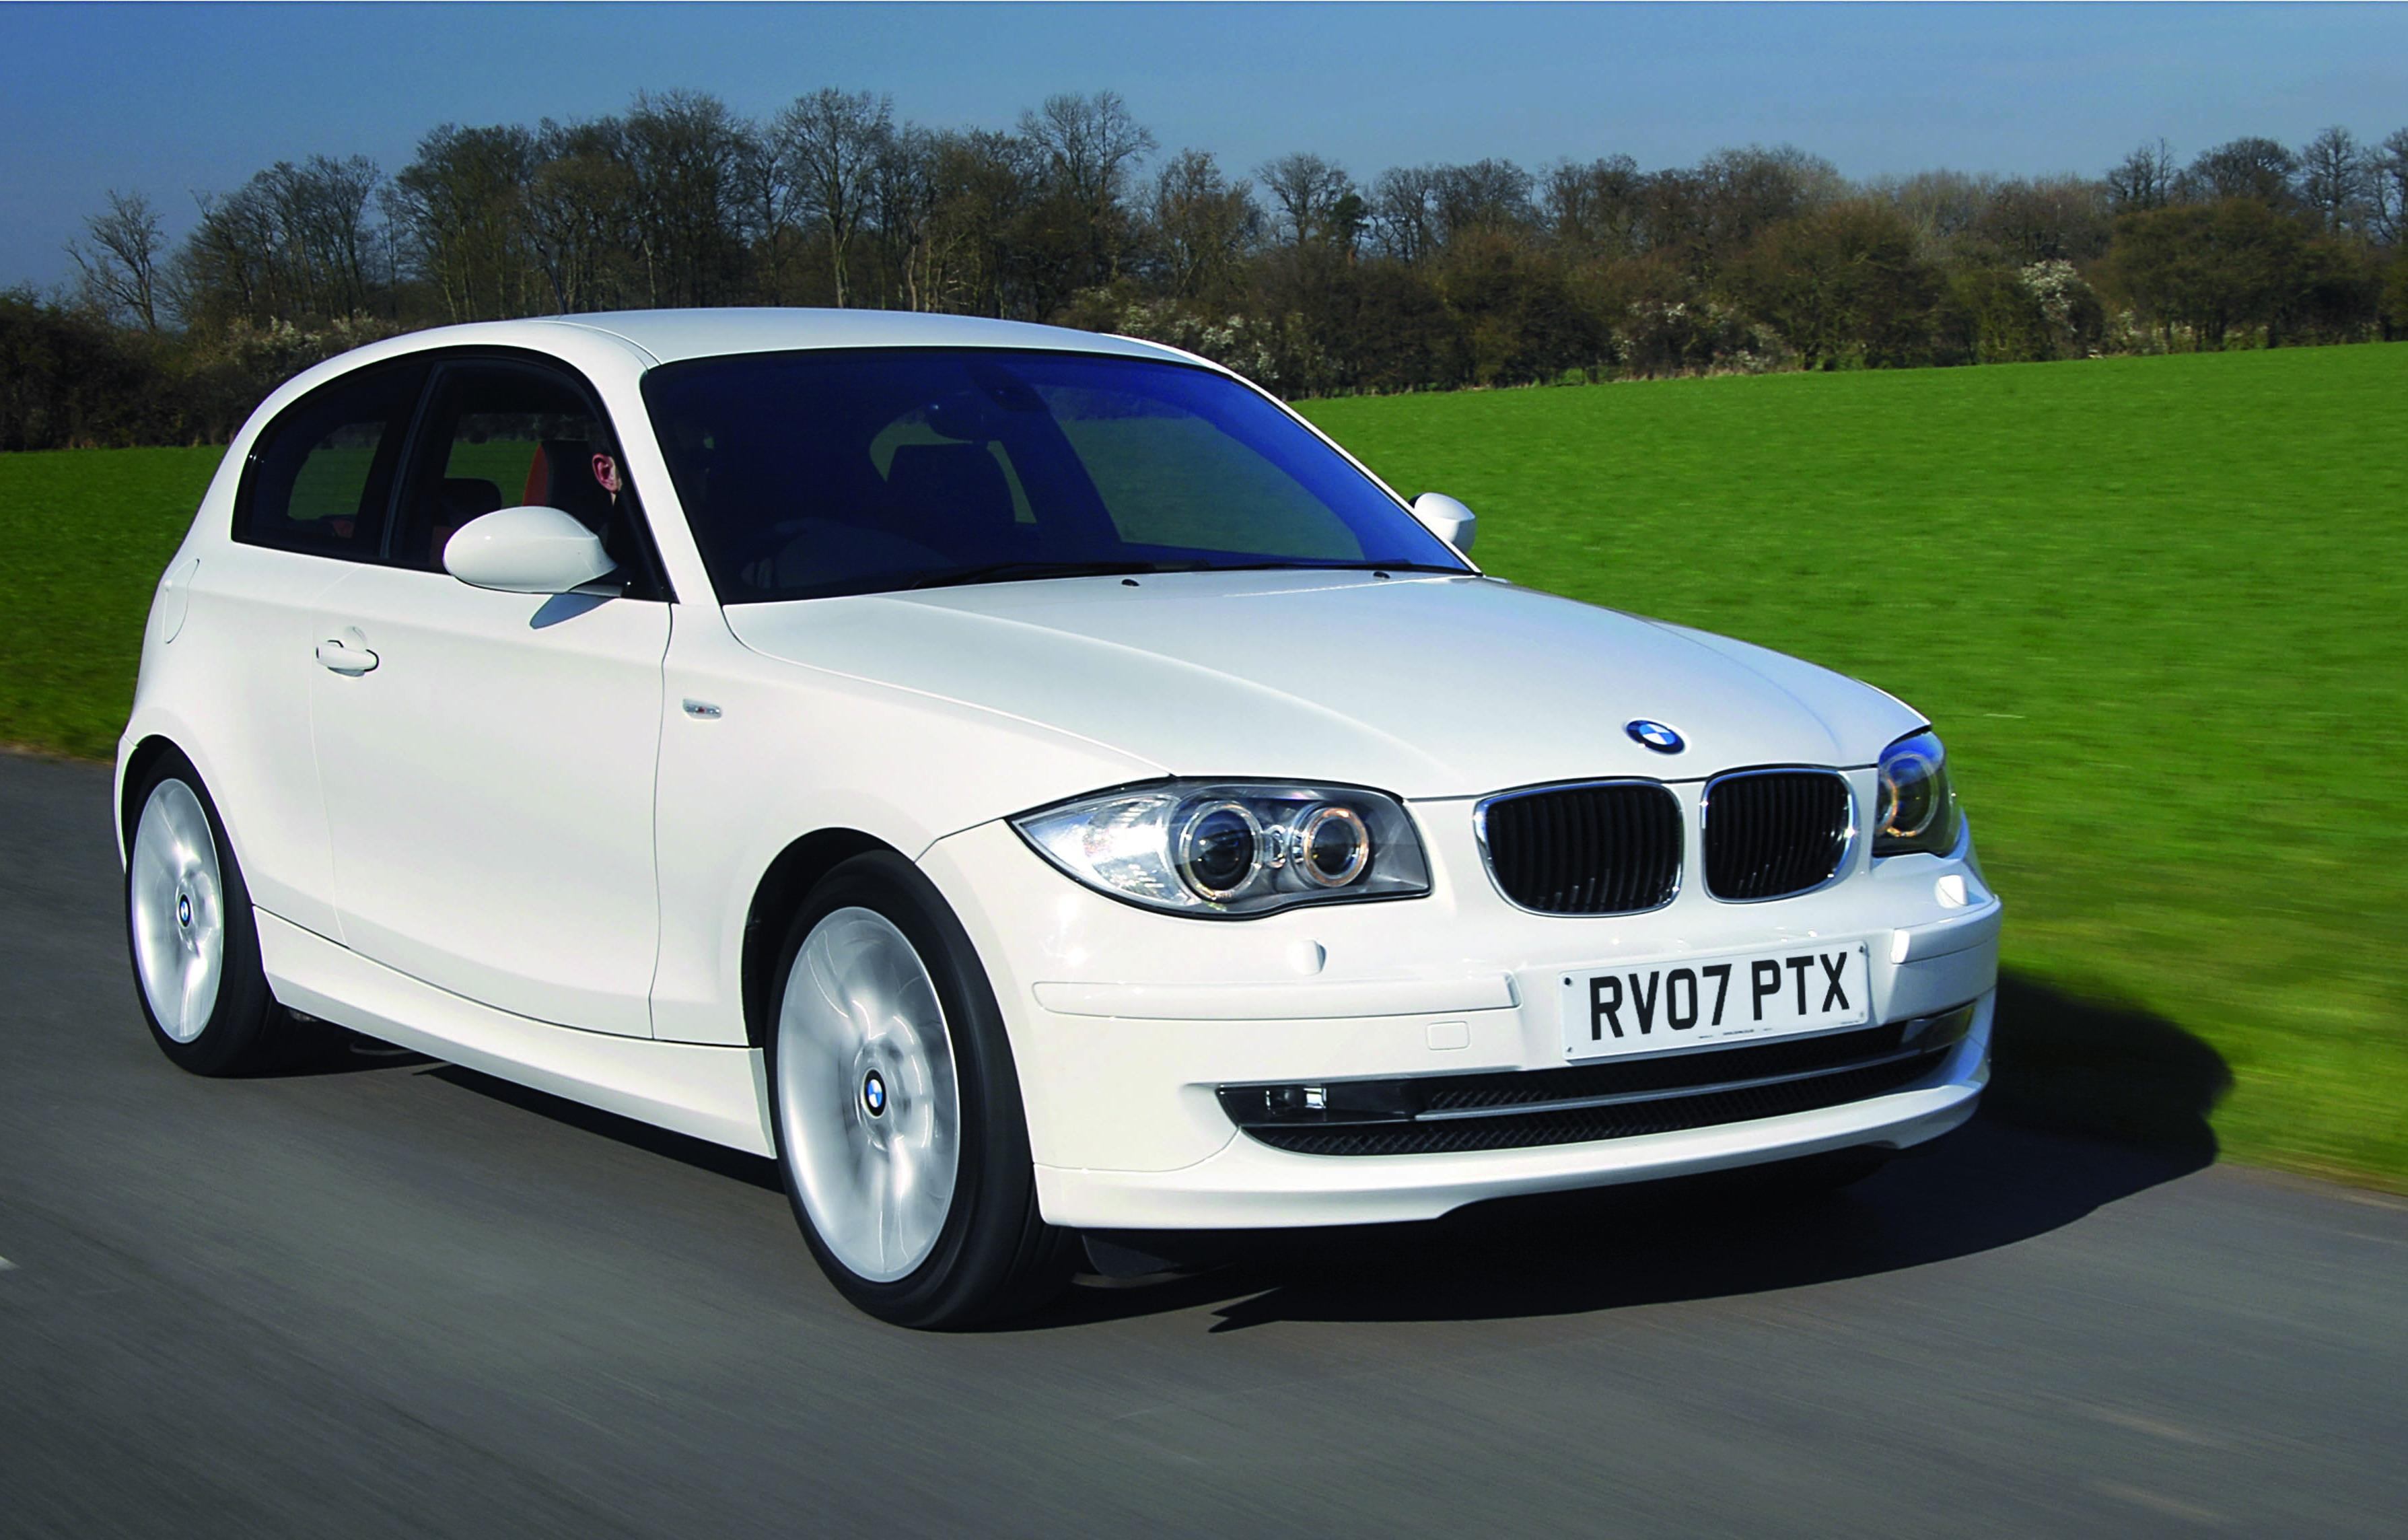 Le Meilleur 2007 Bmw 1 Series 3Door And Facelift Gallery 169726 Top Ce Mois Ci